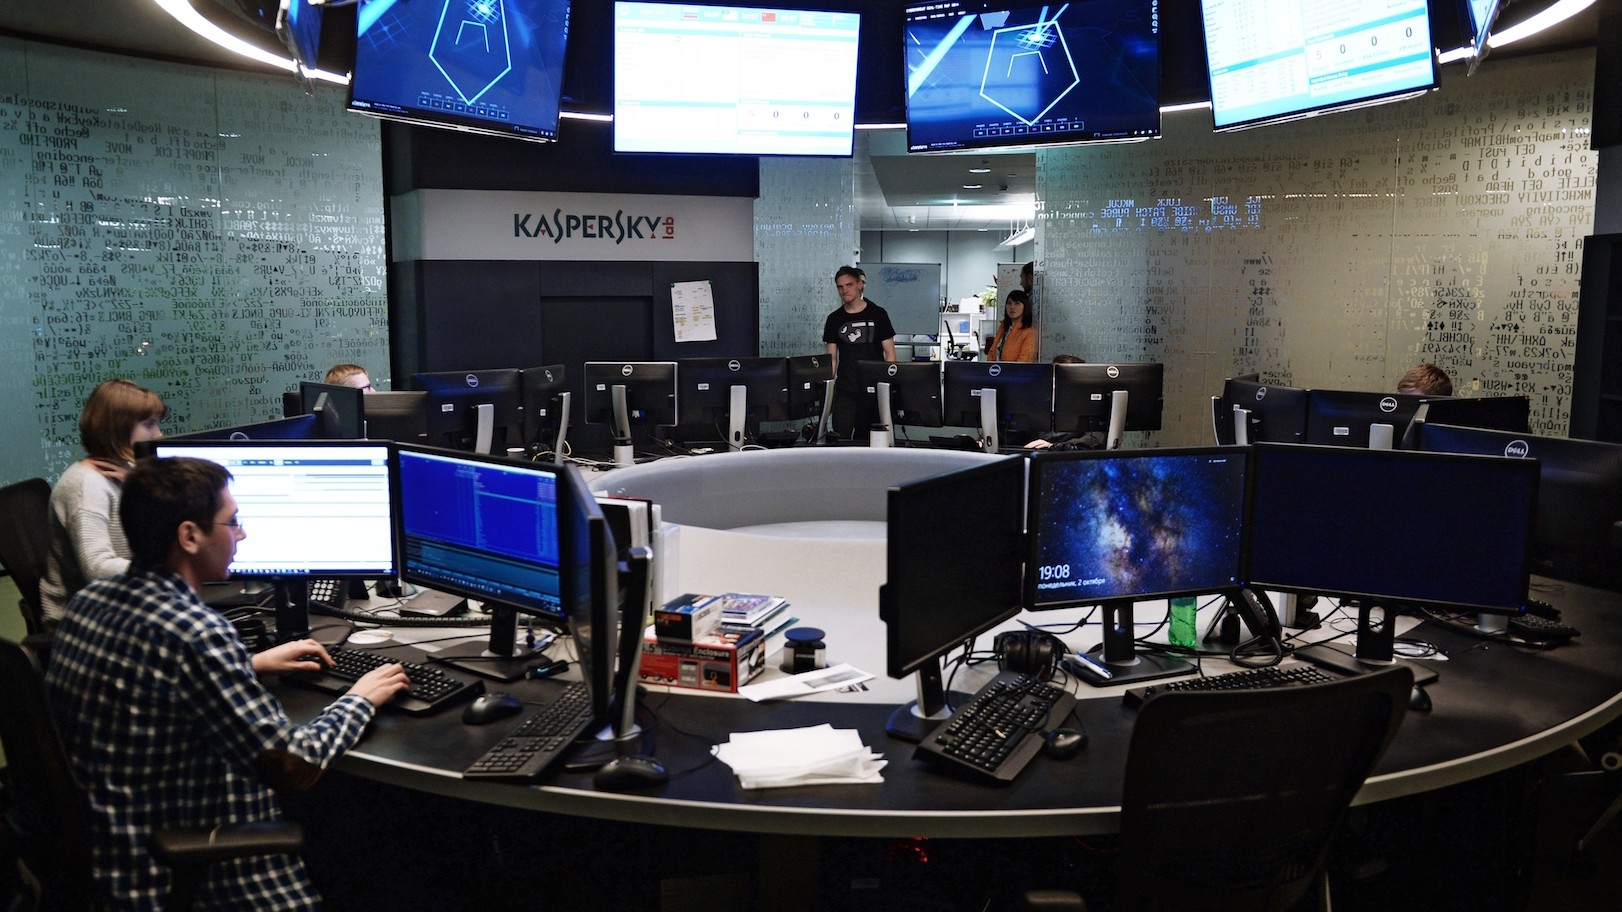 microsoft office company. Russian Security Firm Blames Pirated Microsoft Office For NSA Leak Company T